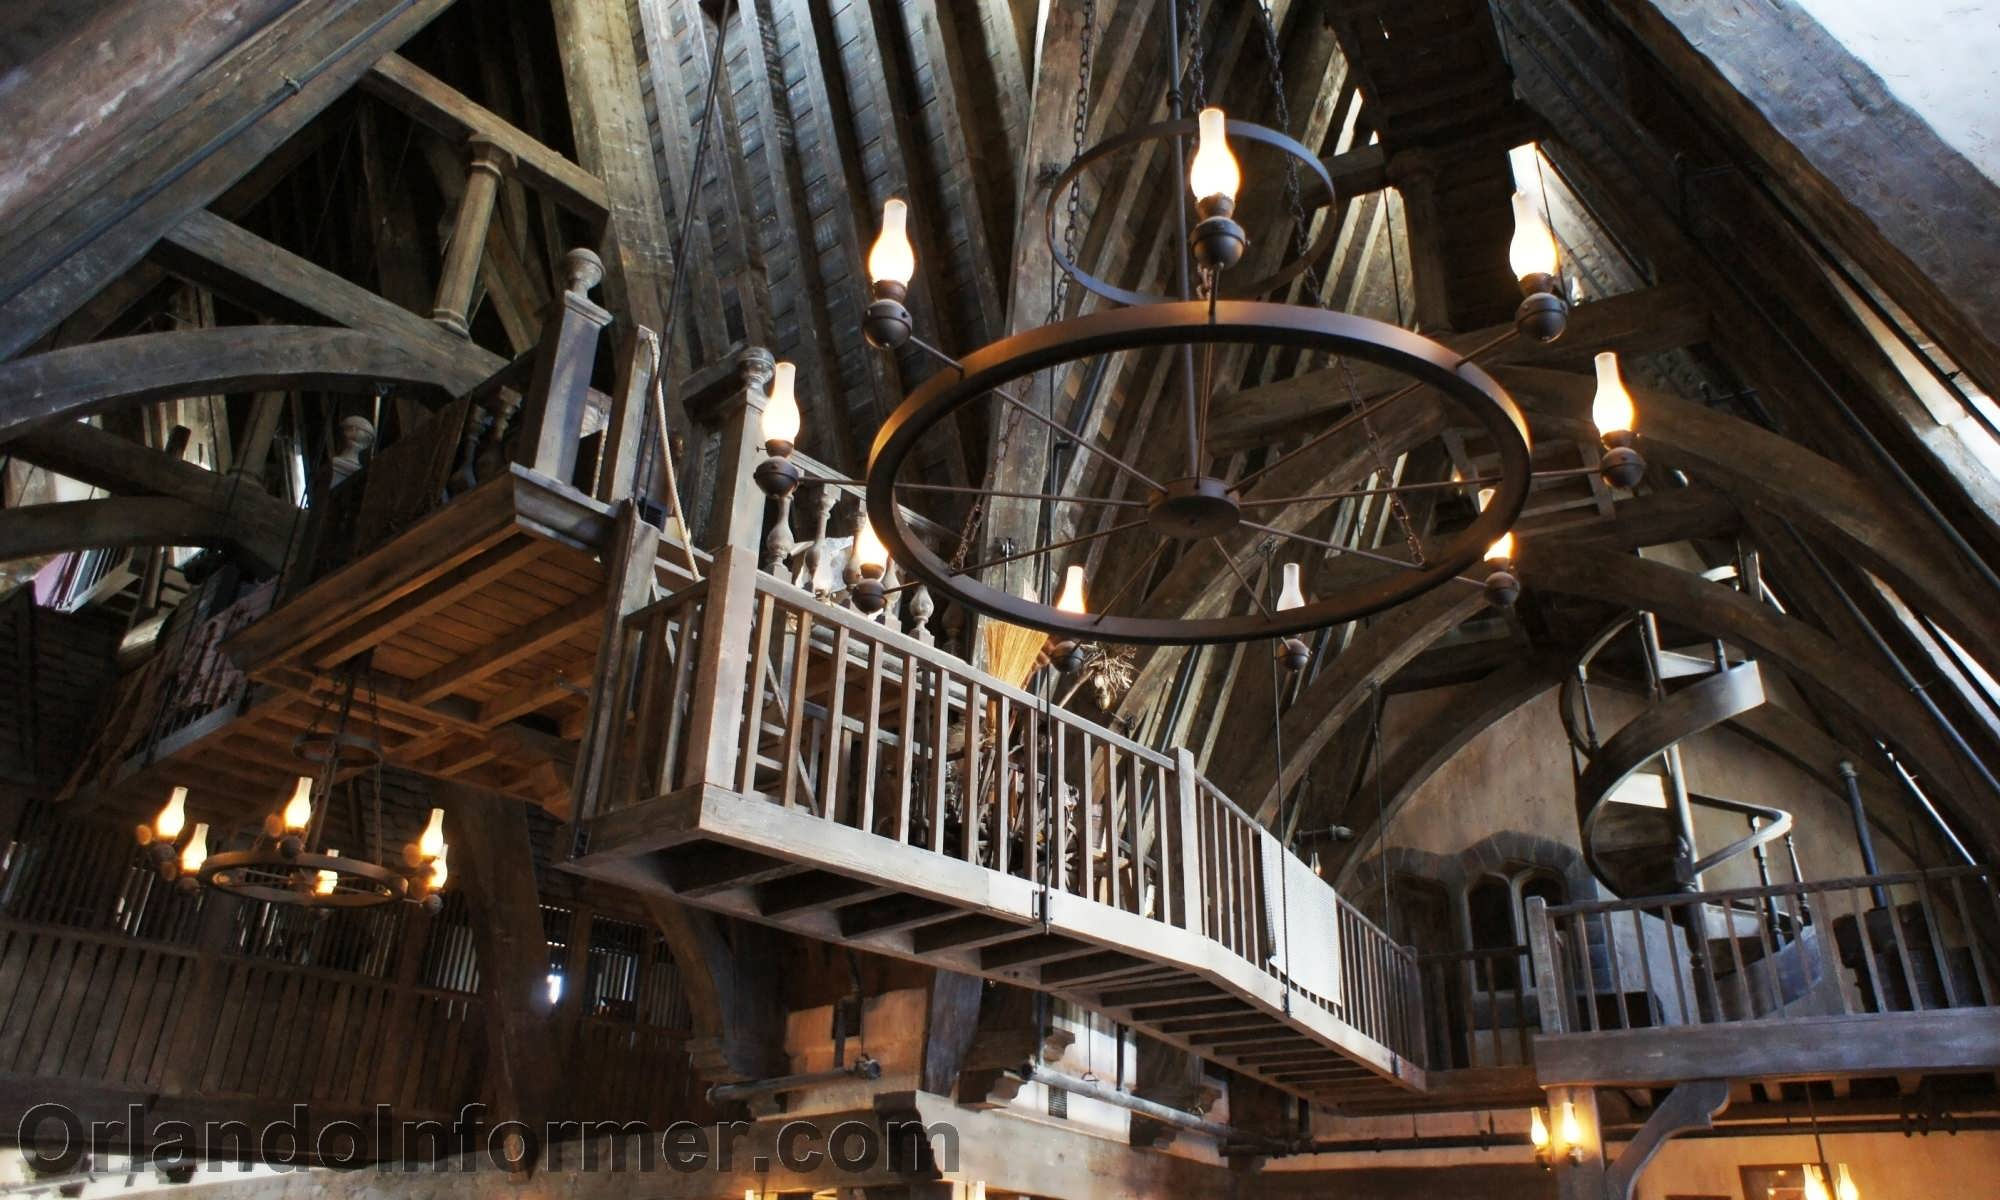 Three Broomsticks: Interior photos.